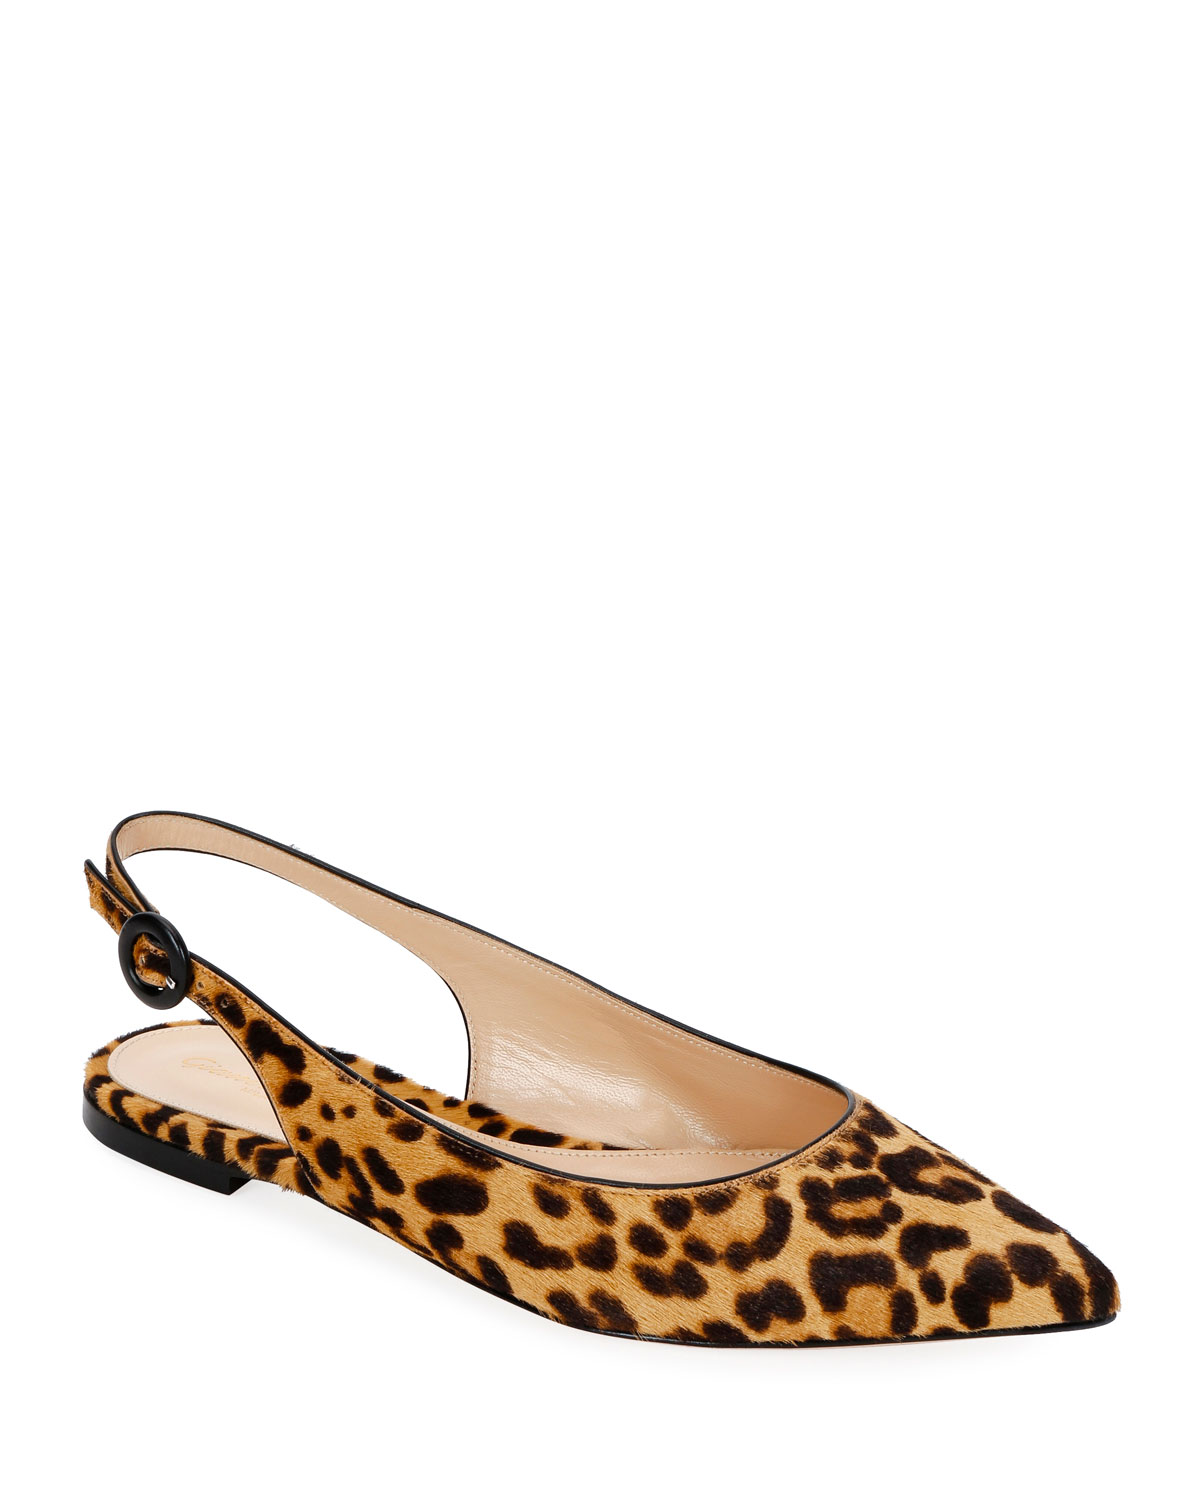 Leopard Calf Hair Slingback Flats by Gianvito Rossi